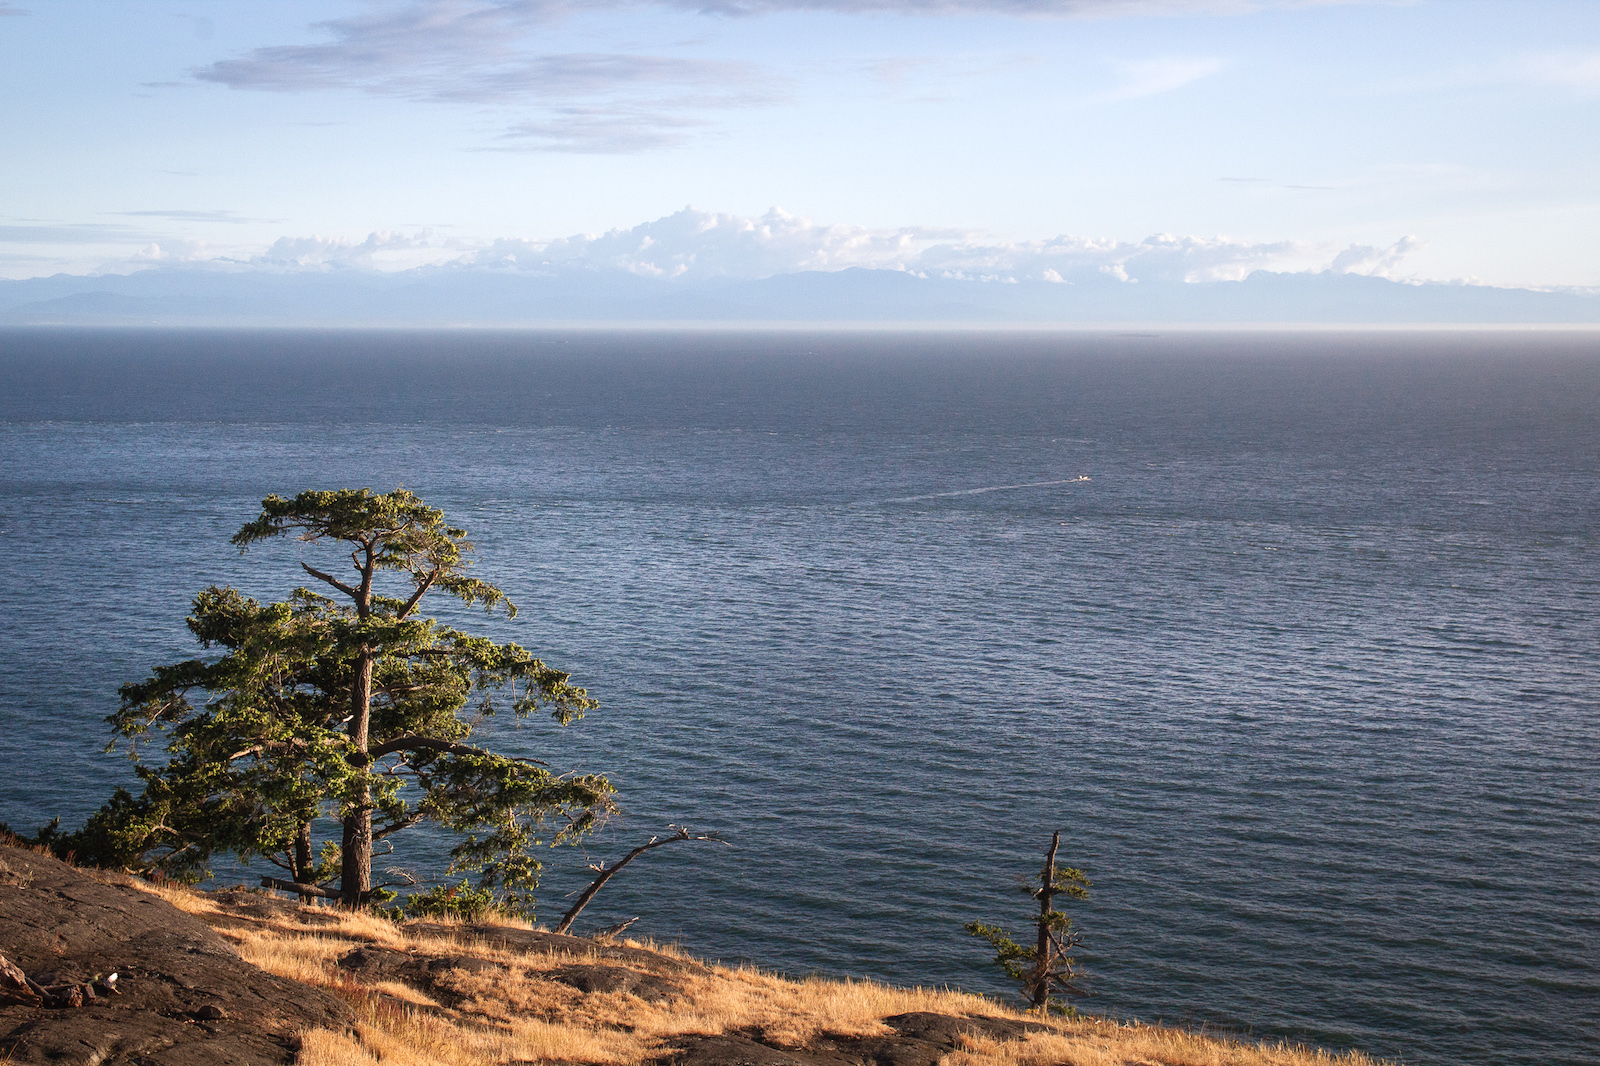 View from Sares Head looking southwest to the Olympic Peninsula